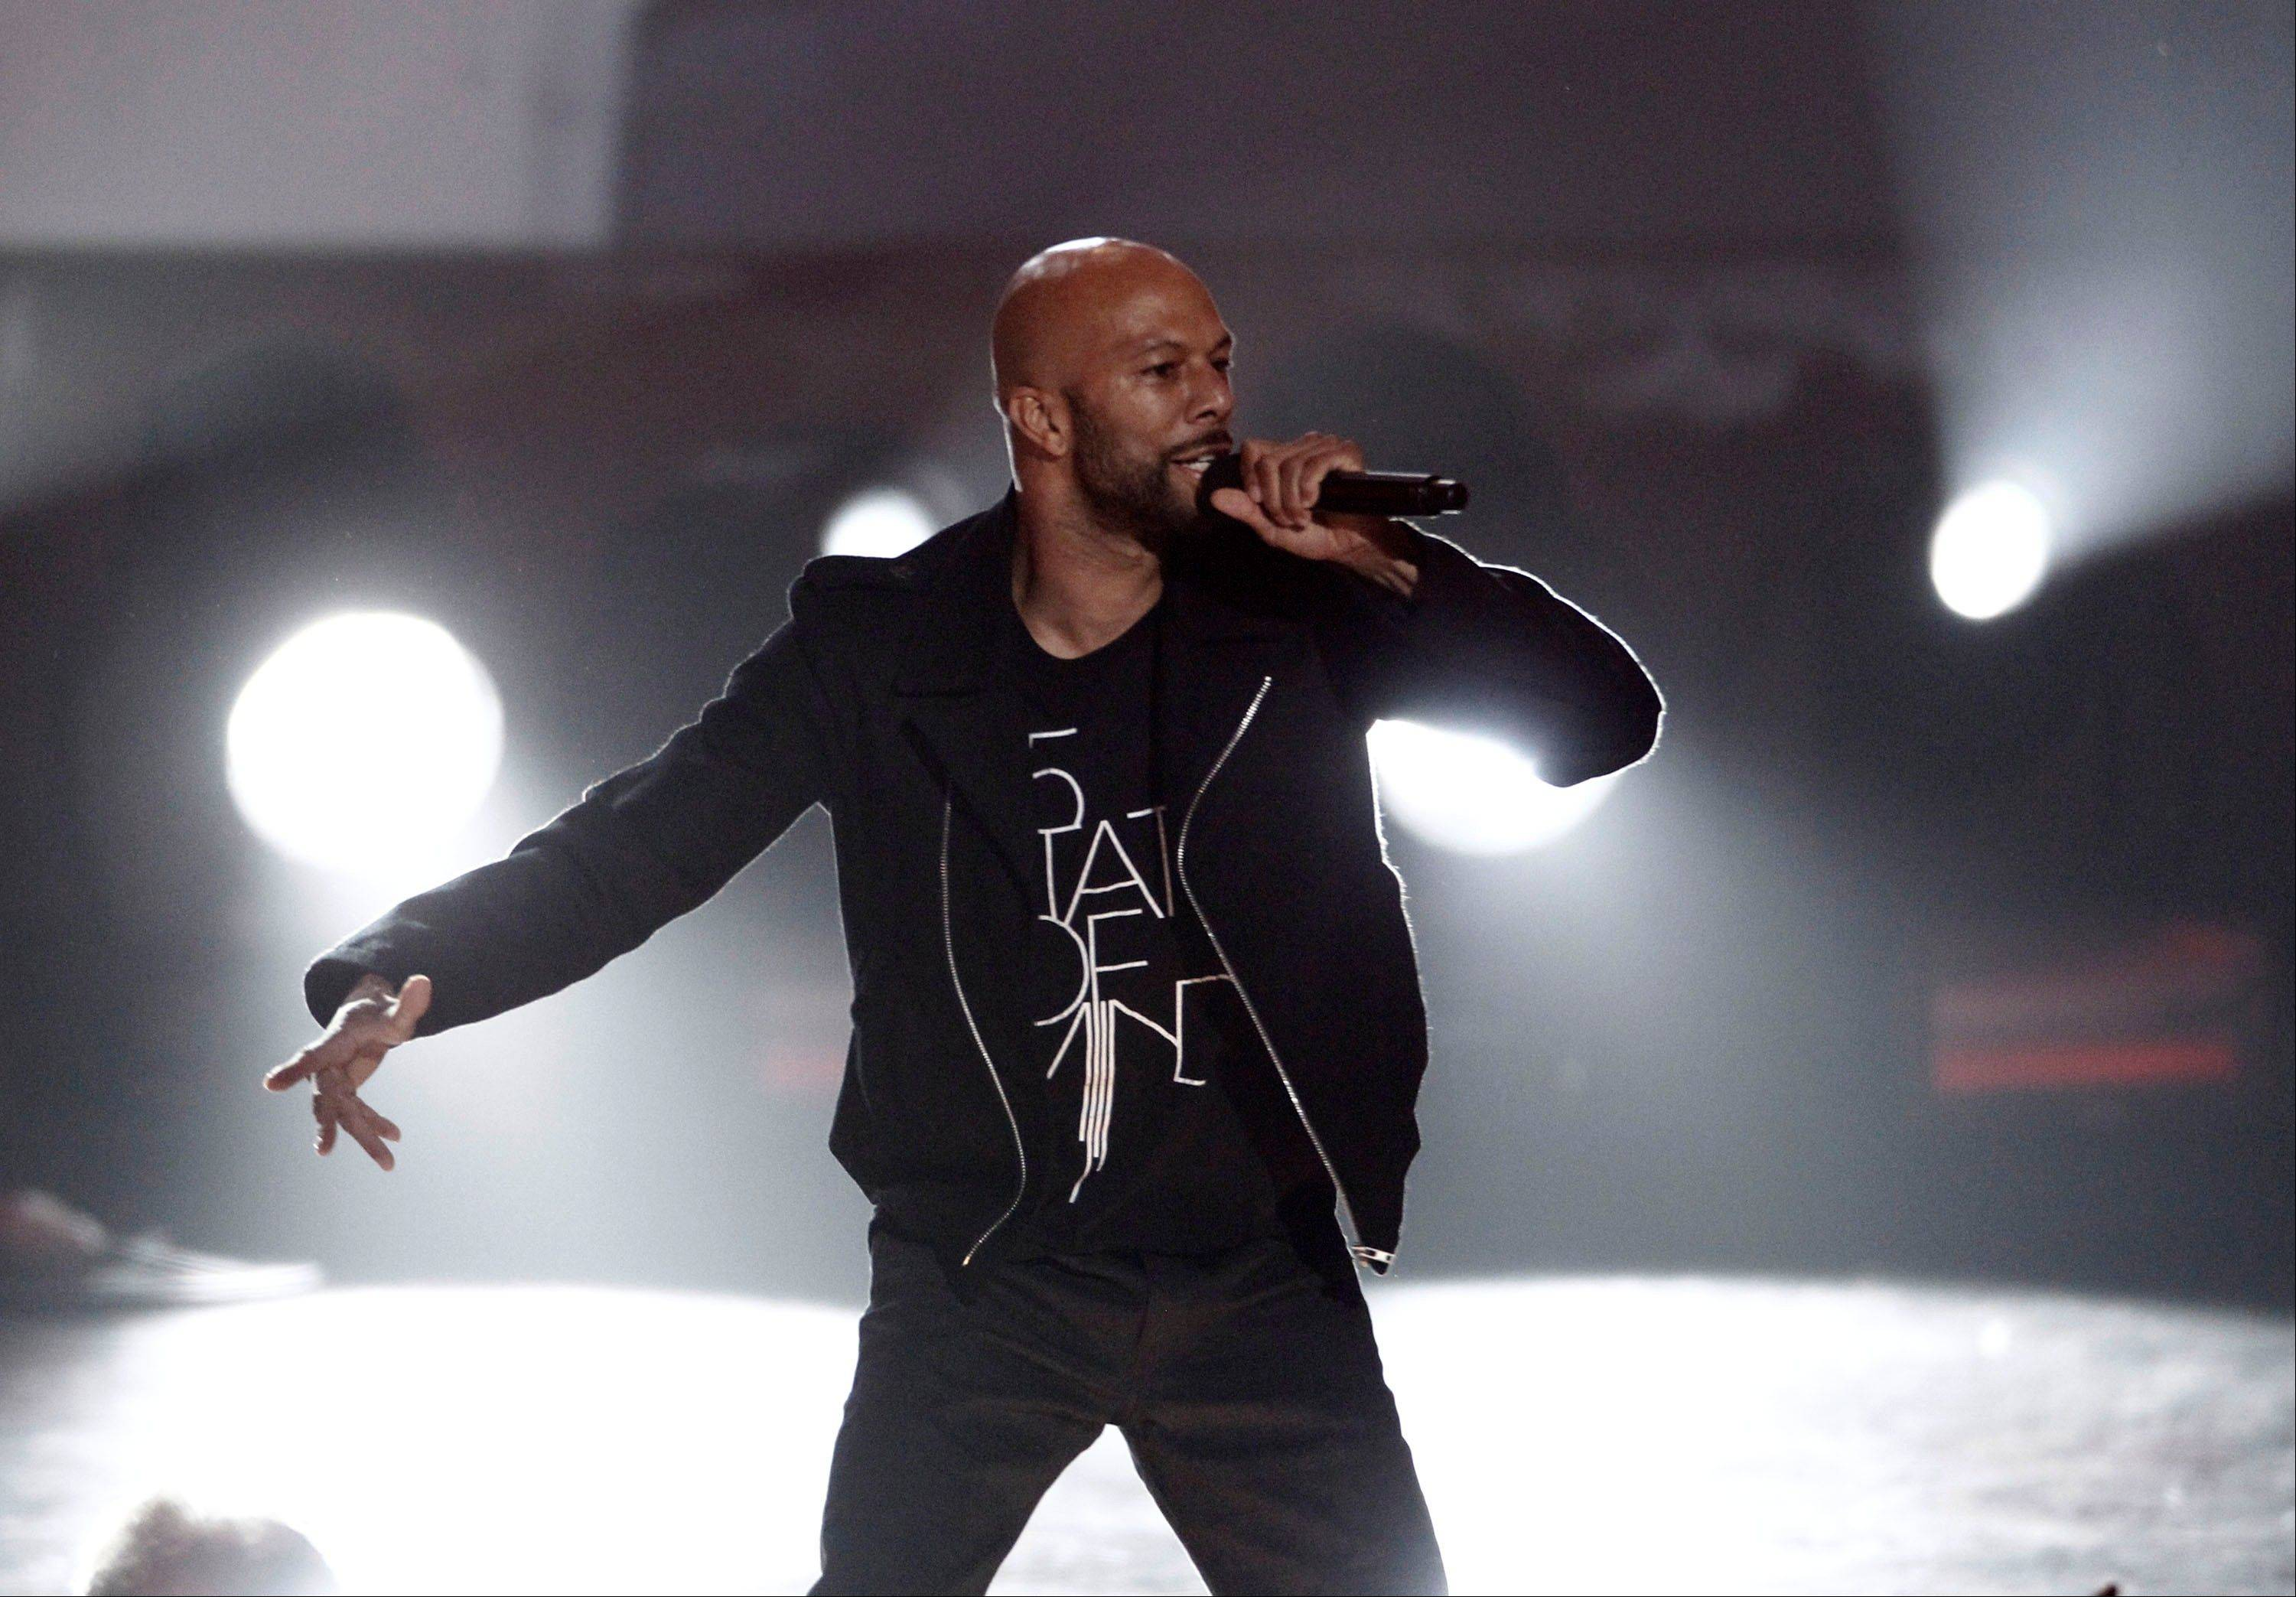 Common performs Wednesday at the Grammy Nominations Concert in Los Angeles.